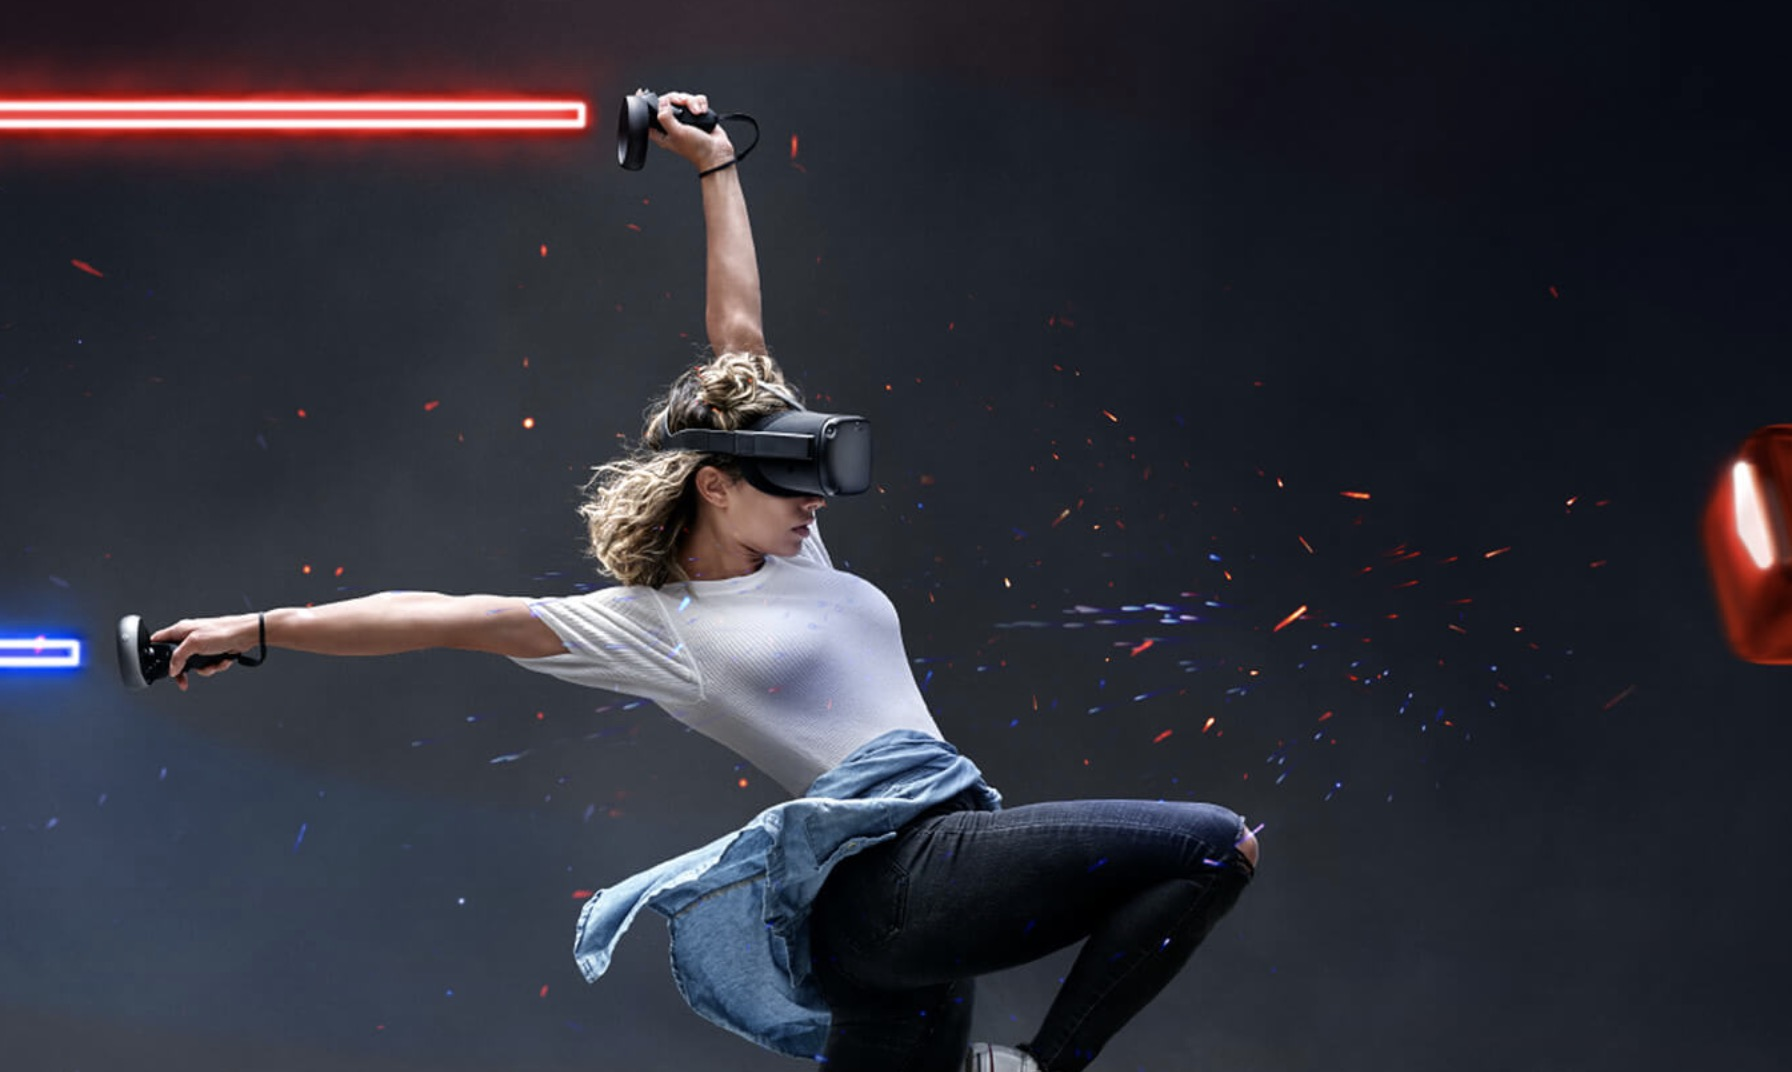 How to Find Oculus Quest in Stock